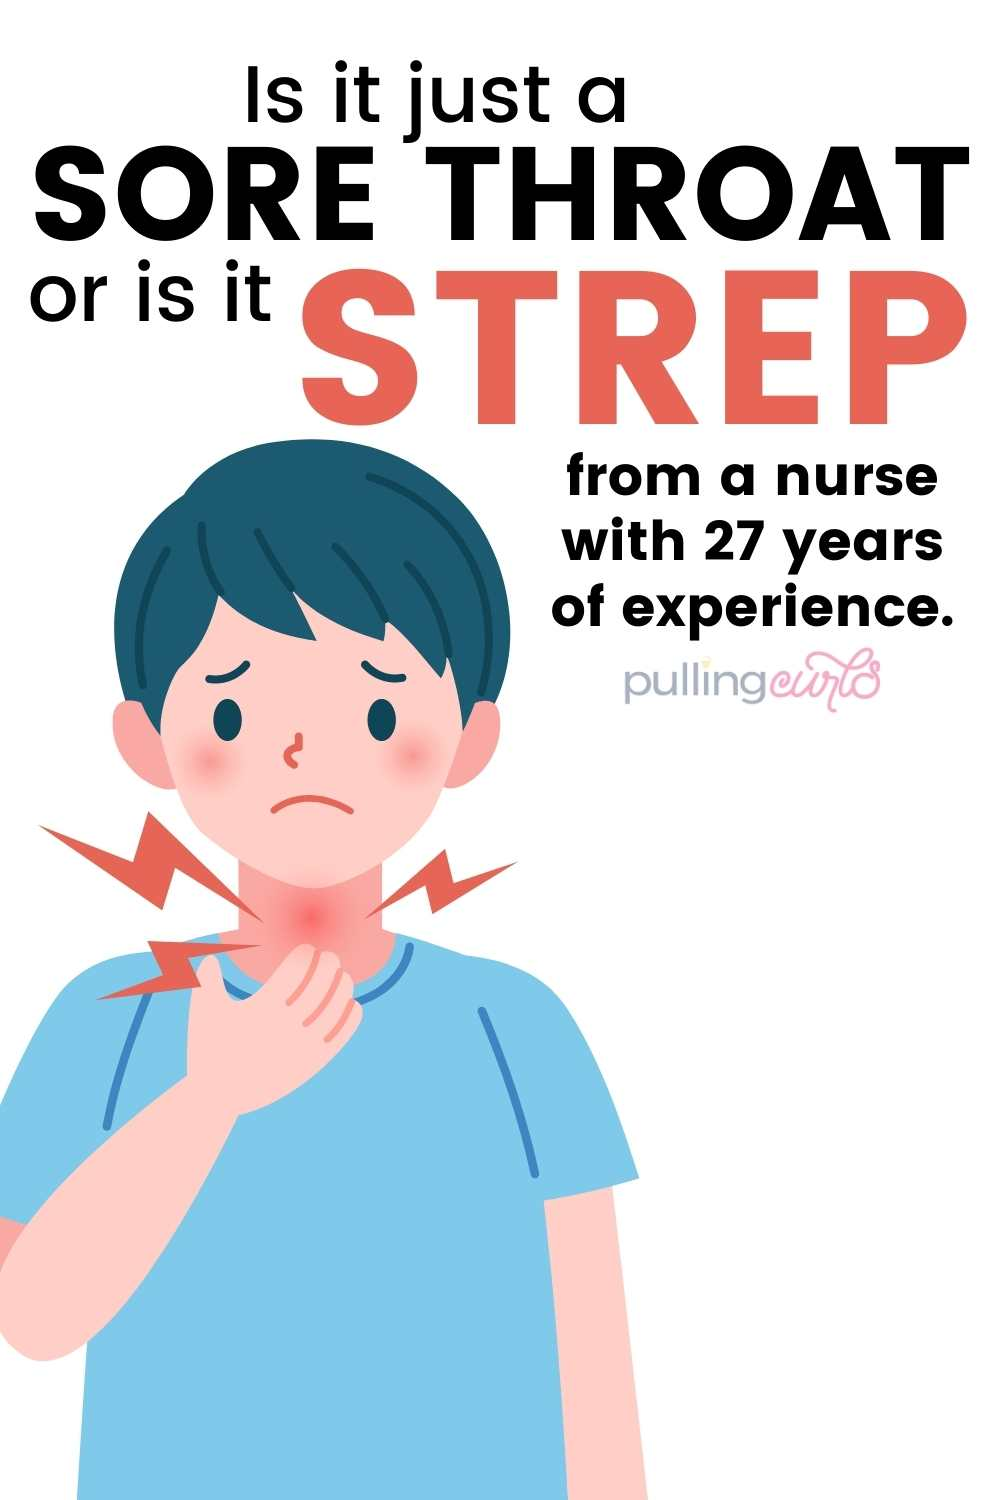 Let's talk abut Strep Throat symptoms, how to tell if you have strep vs a sore throat. If essential oils can be helpful? Also, what to do if you have strep throat when pregnant. How LONG is strep throat contagious, can you be a carrier? Did you know that strep throat has different symptoms in children and that it can ONLY be teated by antibiotics? Yup, lots to learn about strep throat from this RN -- so let's get going! via @pullingcurls